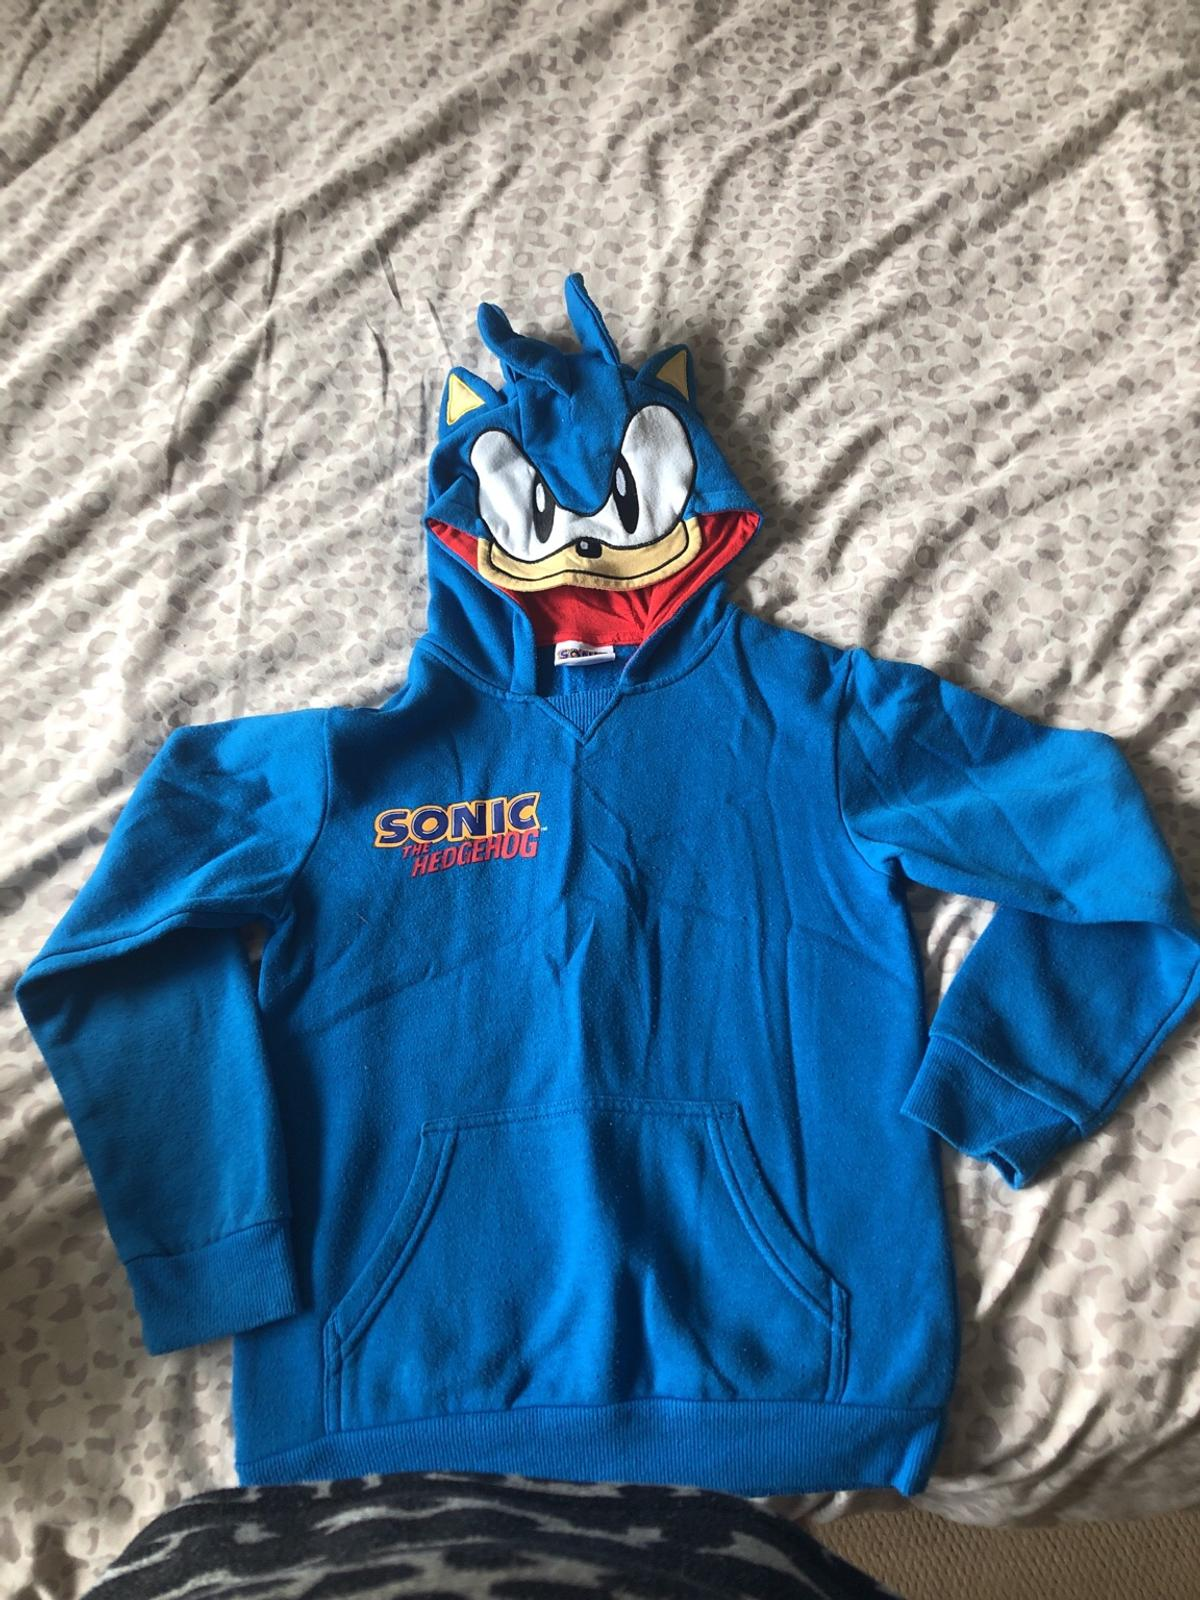 Sonic The Hedgehog Hoodie Age 9 10 In Wv12 Walsall For 3 00 For Sale Shpock